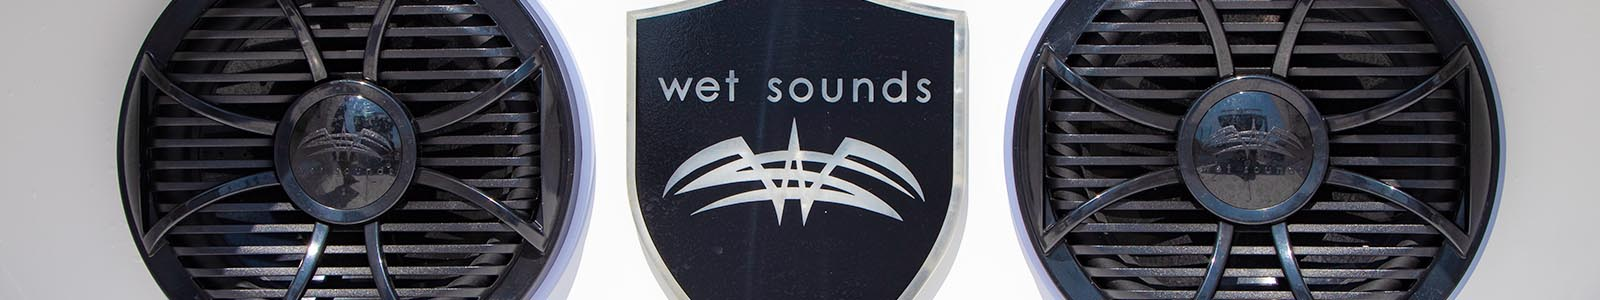 wet-sounds-3.jpg